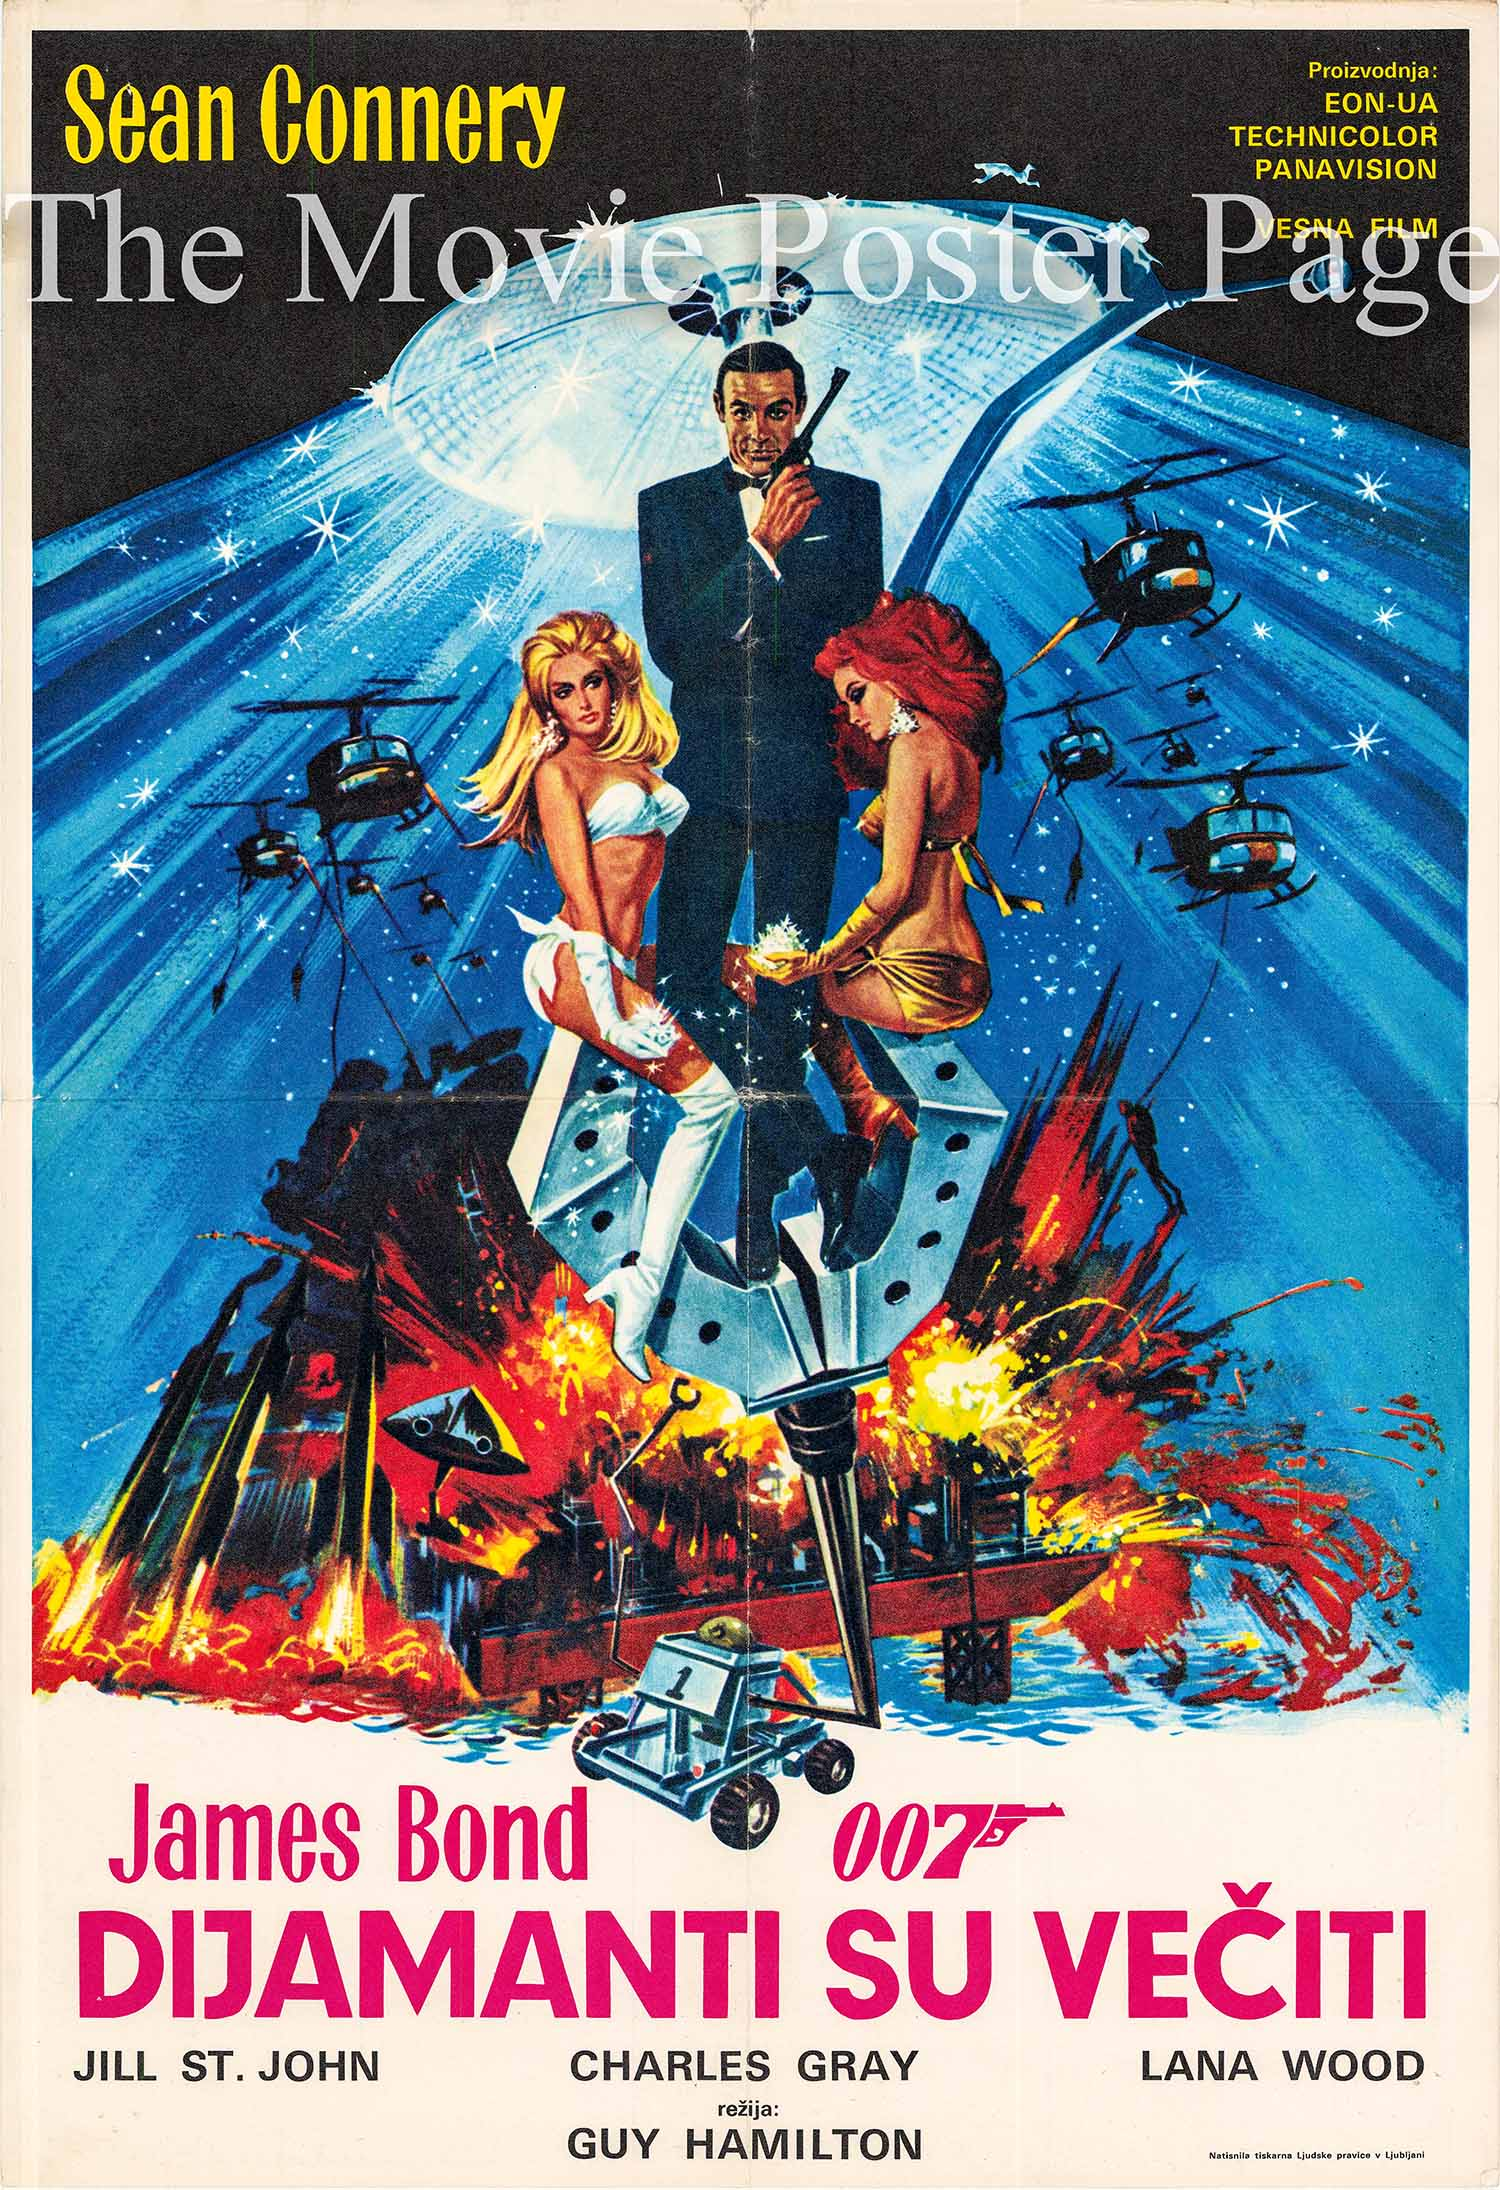 Pictured is a Yugoslavian promotional poster using art by Robert McGinnis made to promote the 1971 Guy Hamilton film Diamonds Are Forever starring Sean Connery as James Bond.